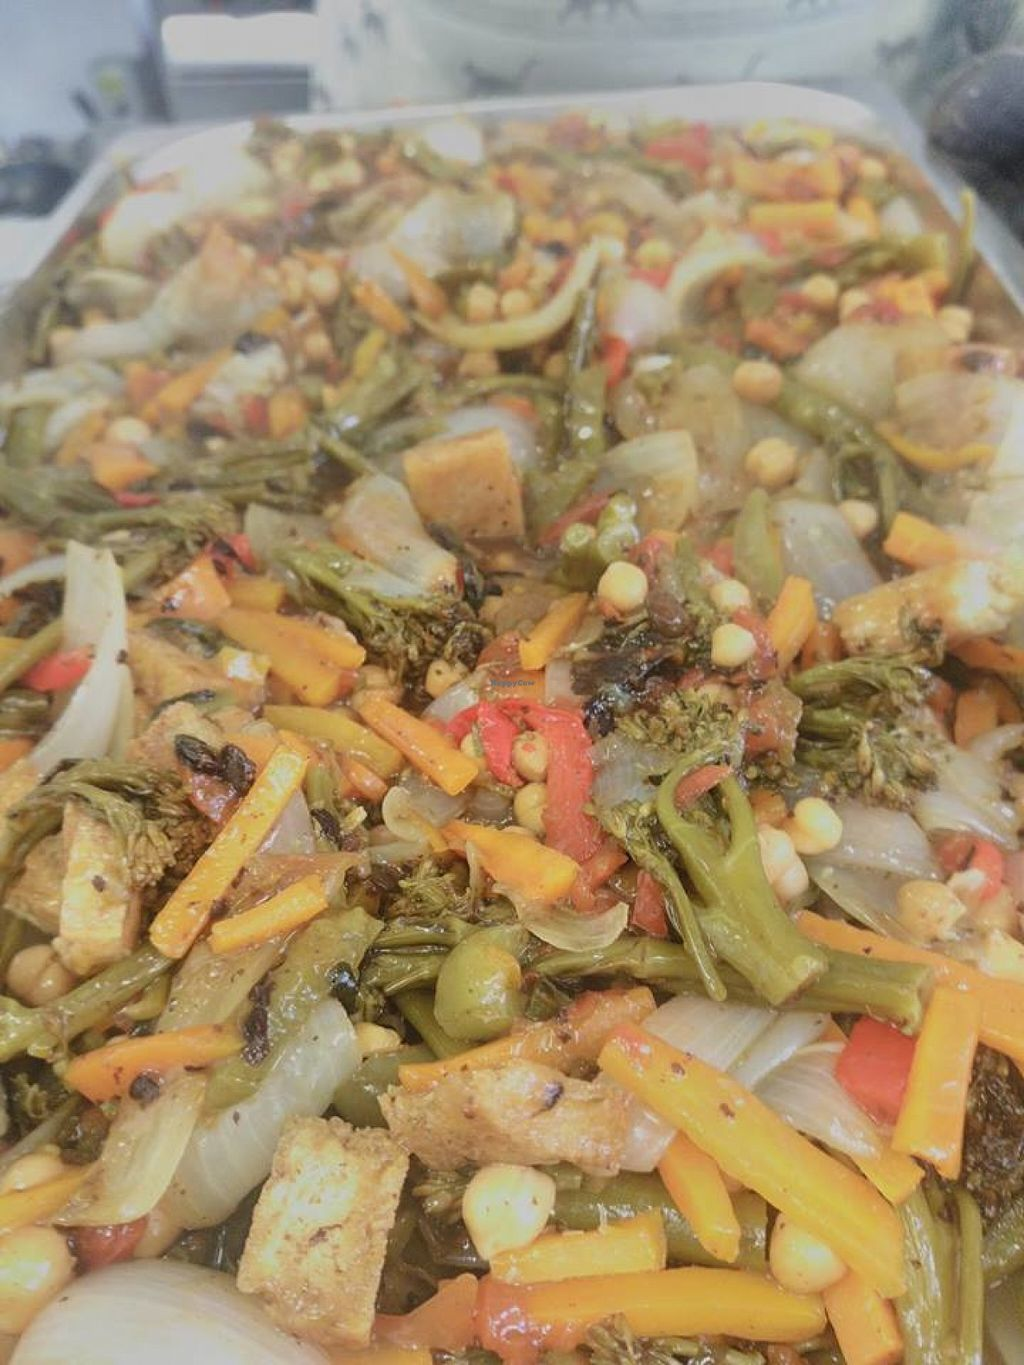 """Photo of The Real Junk Food Project  by <a href=""""/members/profile/Meaks"""">Meaks</a> <br/>Tofu & Veg in a Black Bean Sauce <br/> July 29, 2016  - <a href='/contact/abuse/image/71750/163166'>Report</a>"""